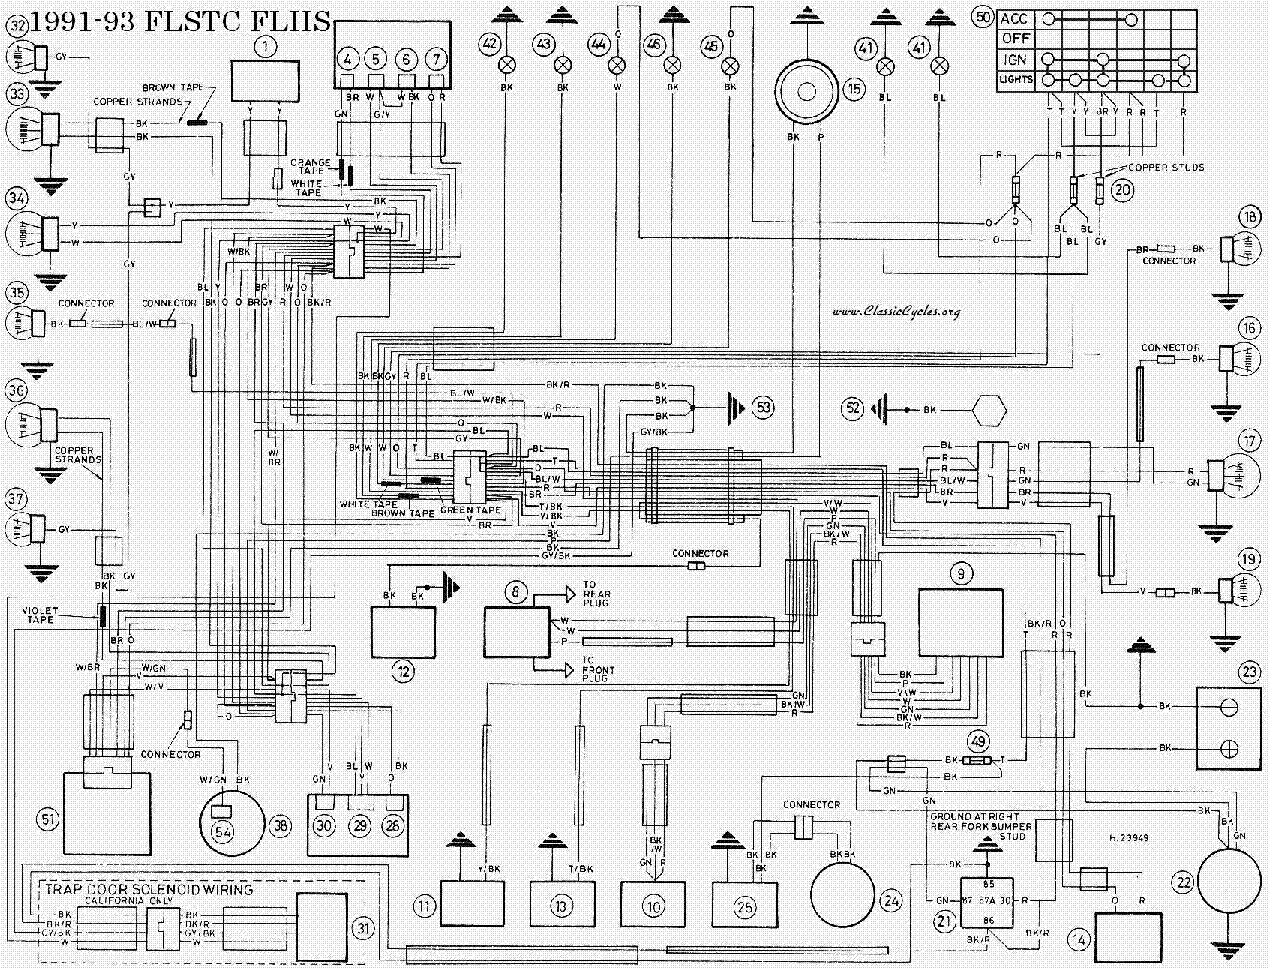 harley engine diagram 2002 wiring diagram homesystem diagrams 2002 harley davidson motorcycles engines diagrams harley davidson 1991 93 flstc flhs wiring diagram